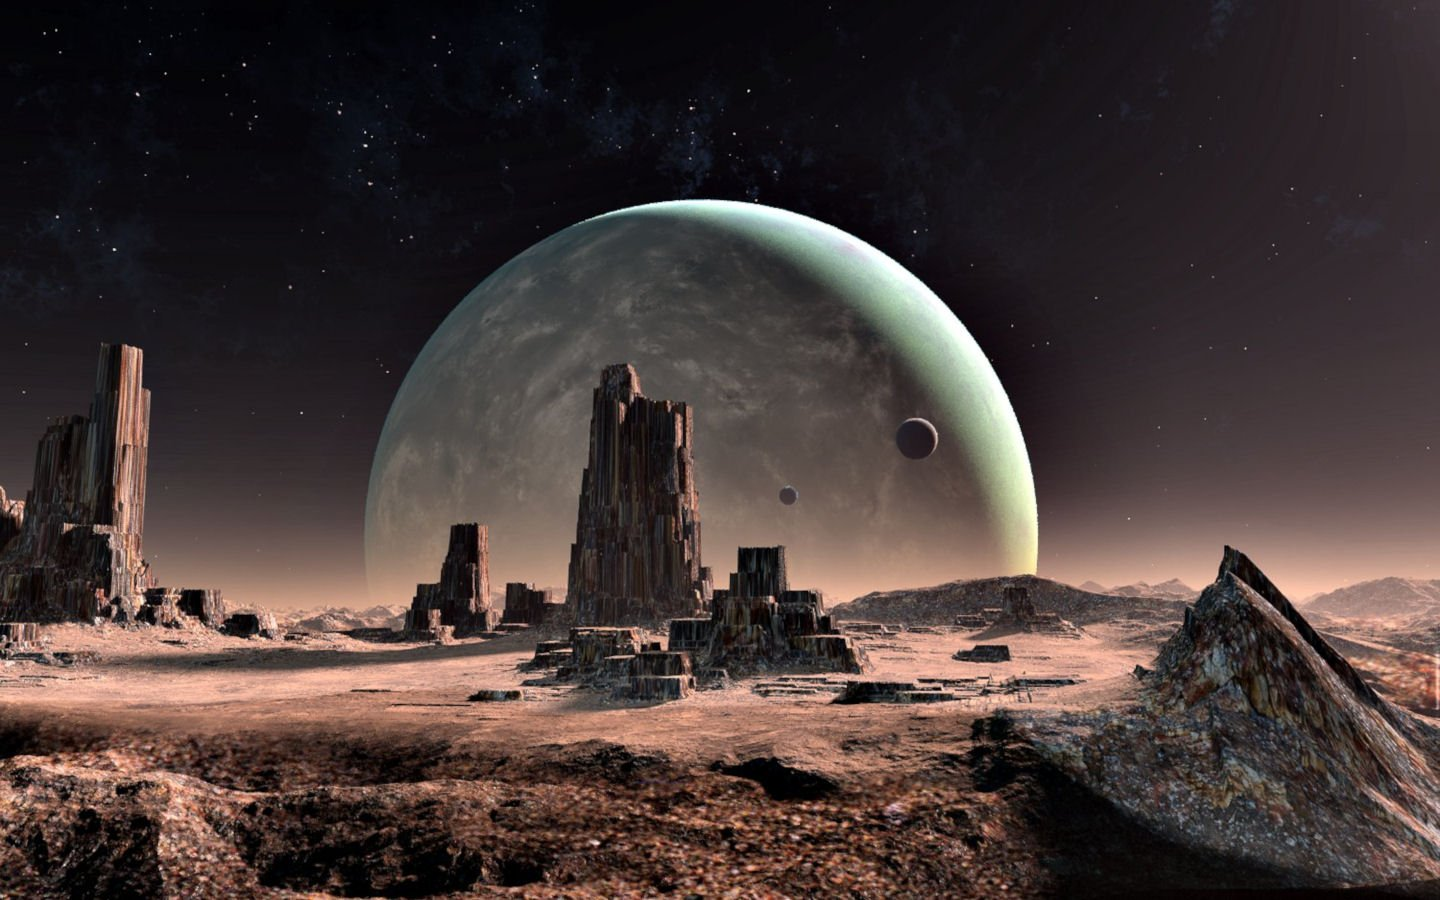 [48+] Alien Planet Landscapes Wallpaper on WallpaperSafari